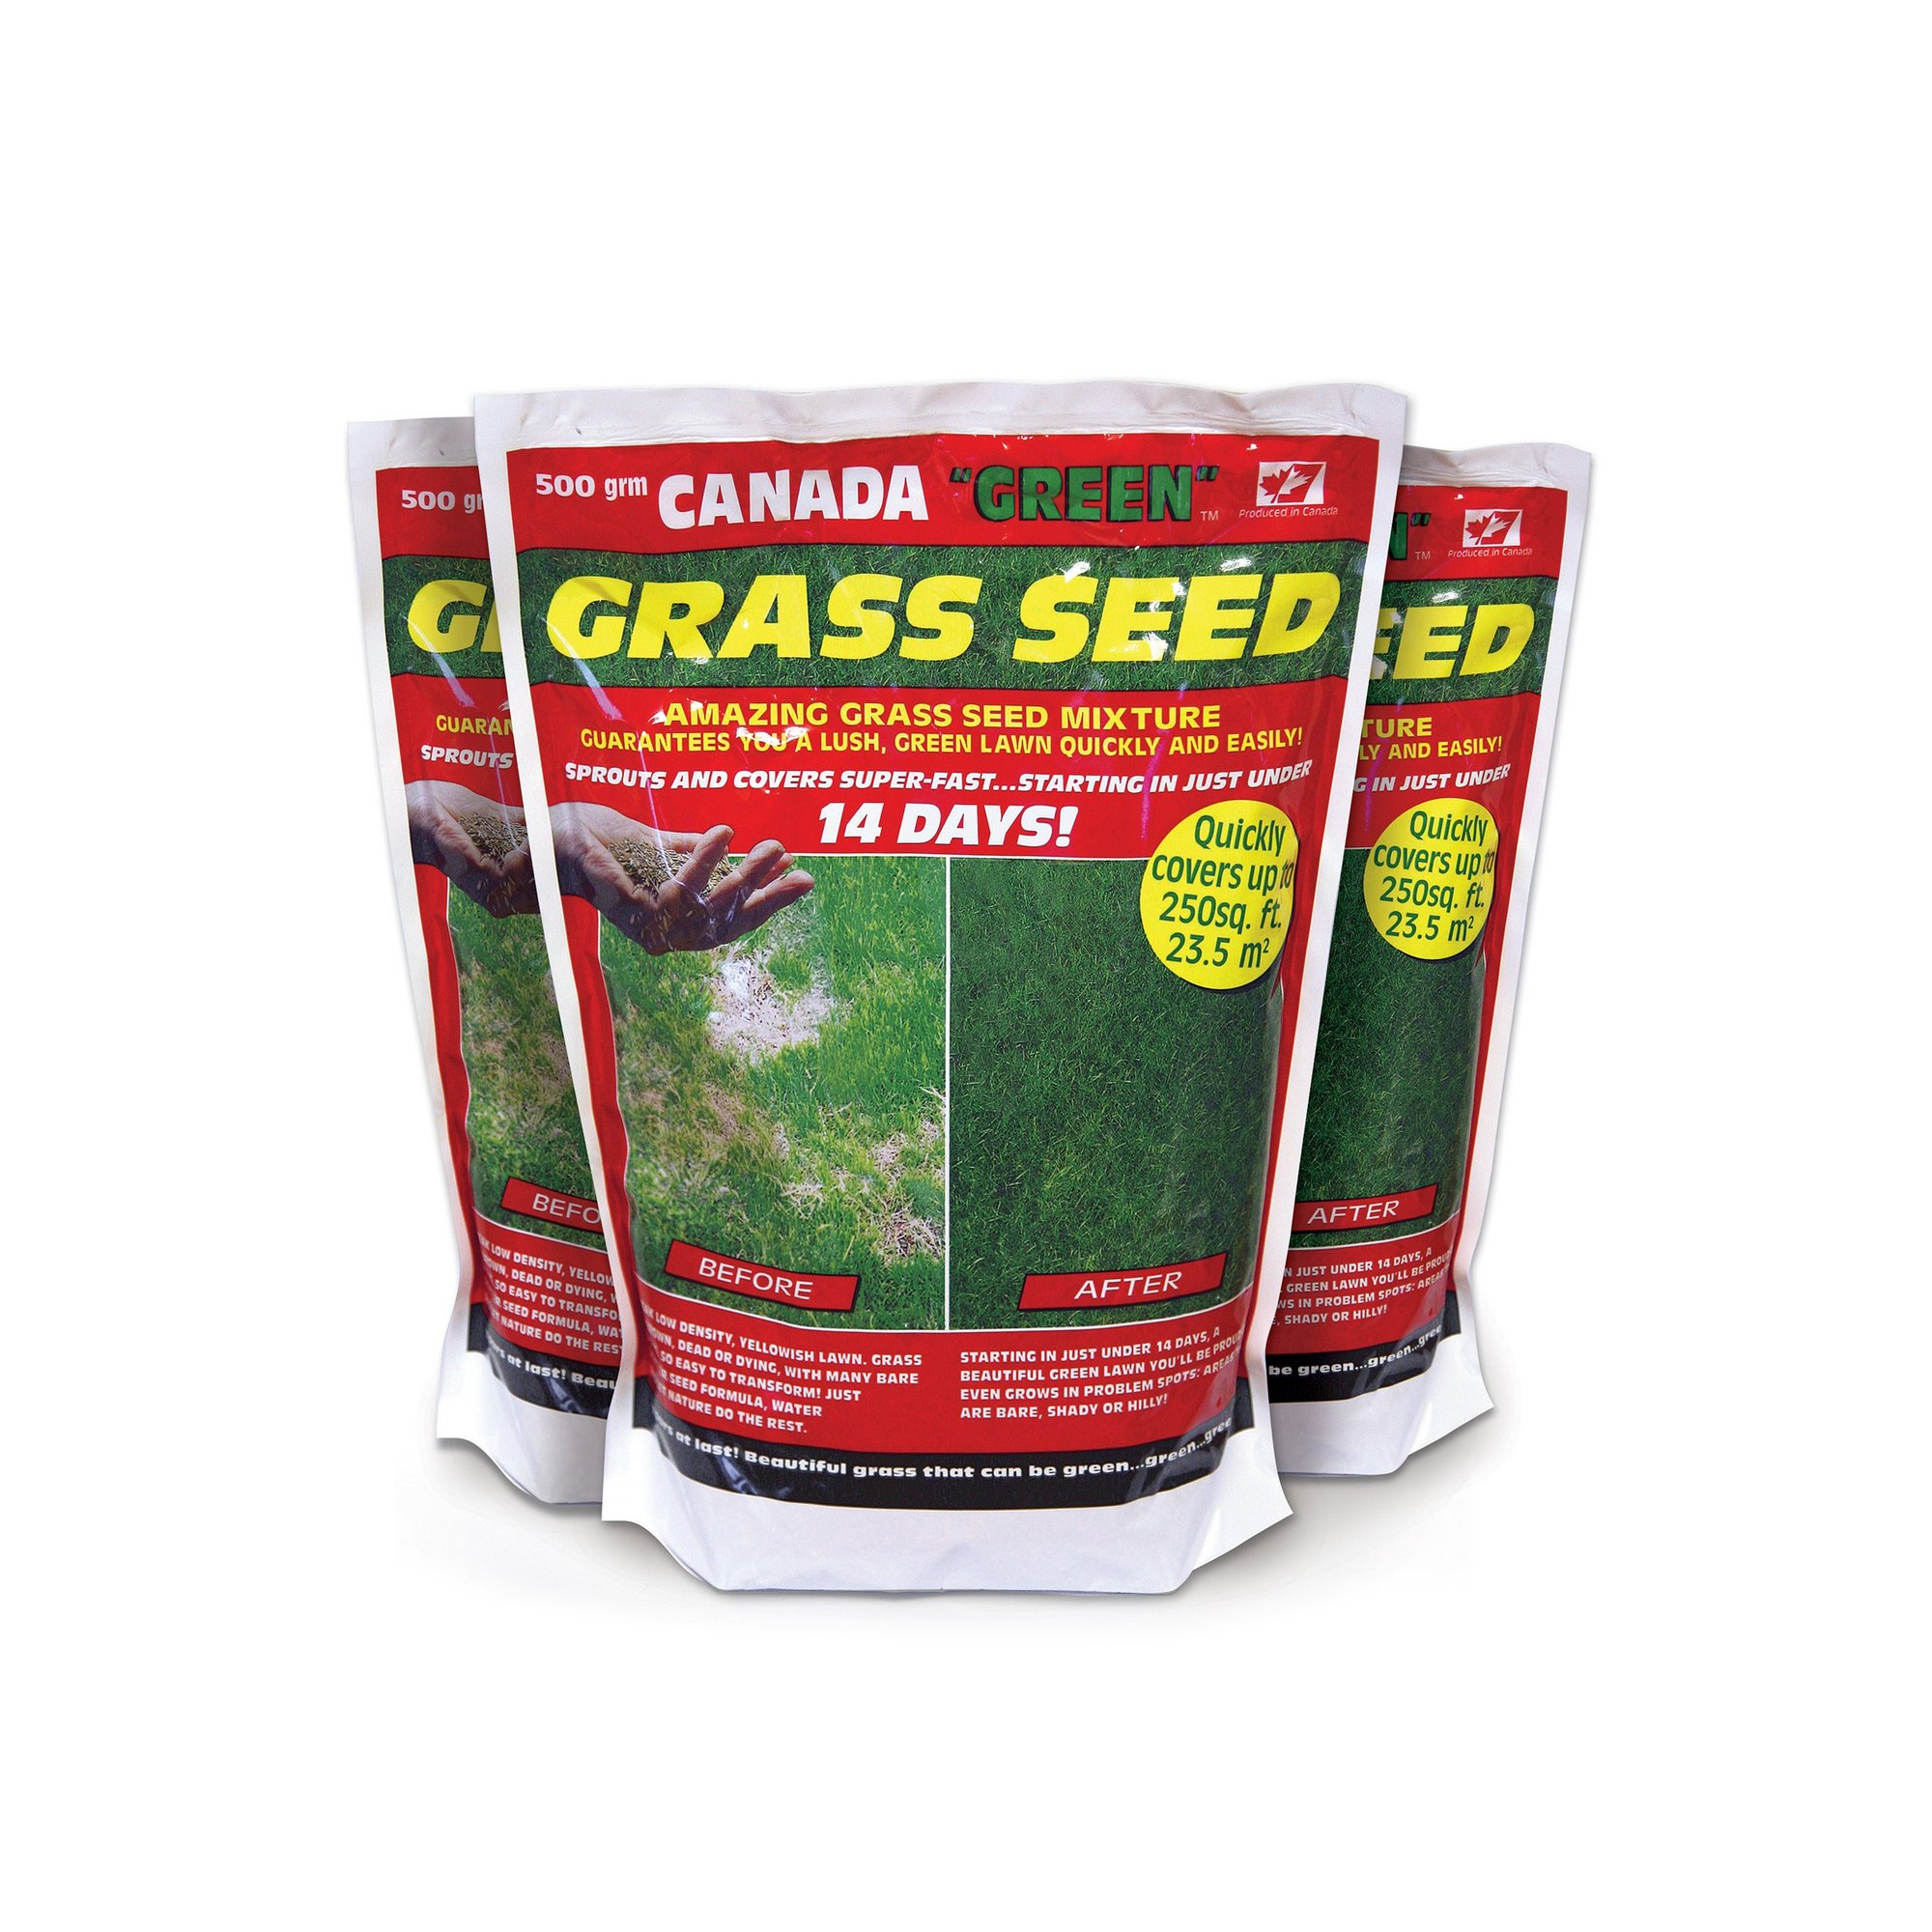 Image of Canada Green 500g Pack Grass Seed - Buy 2 Get 1 FREE